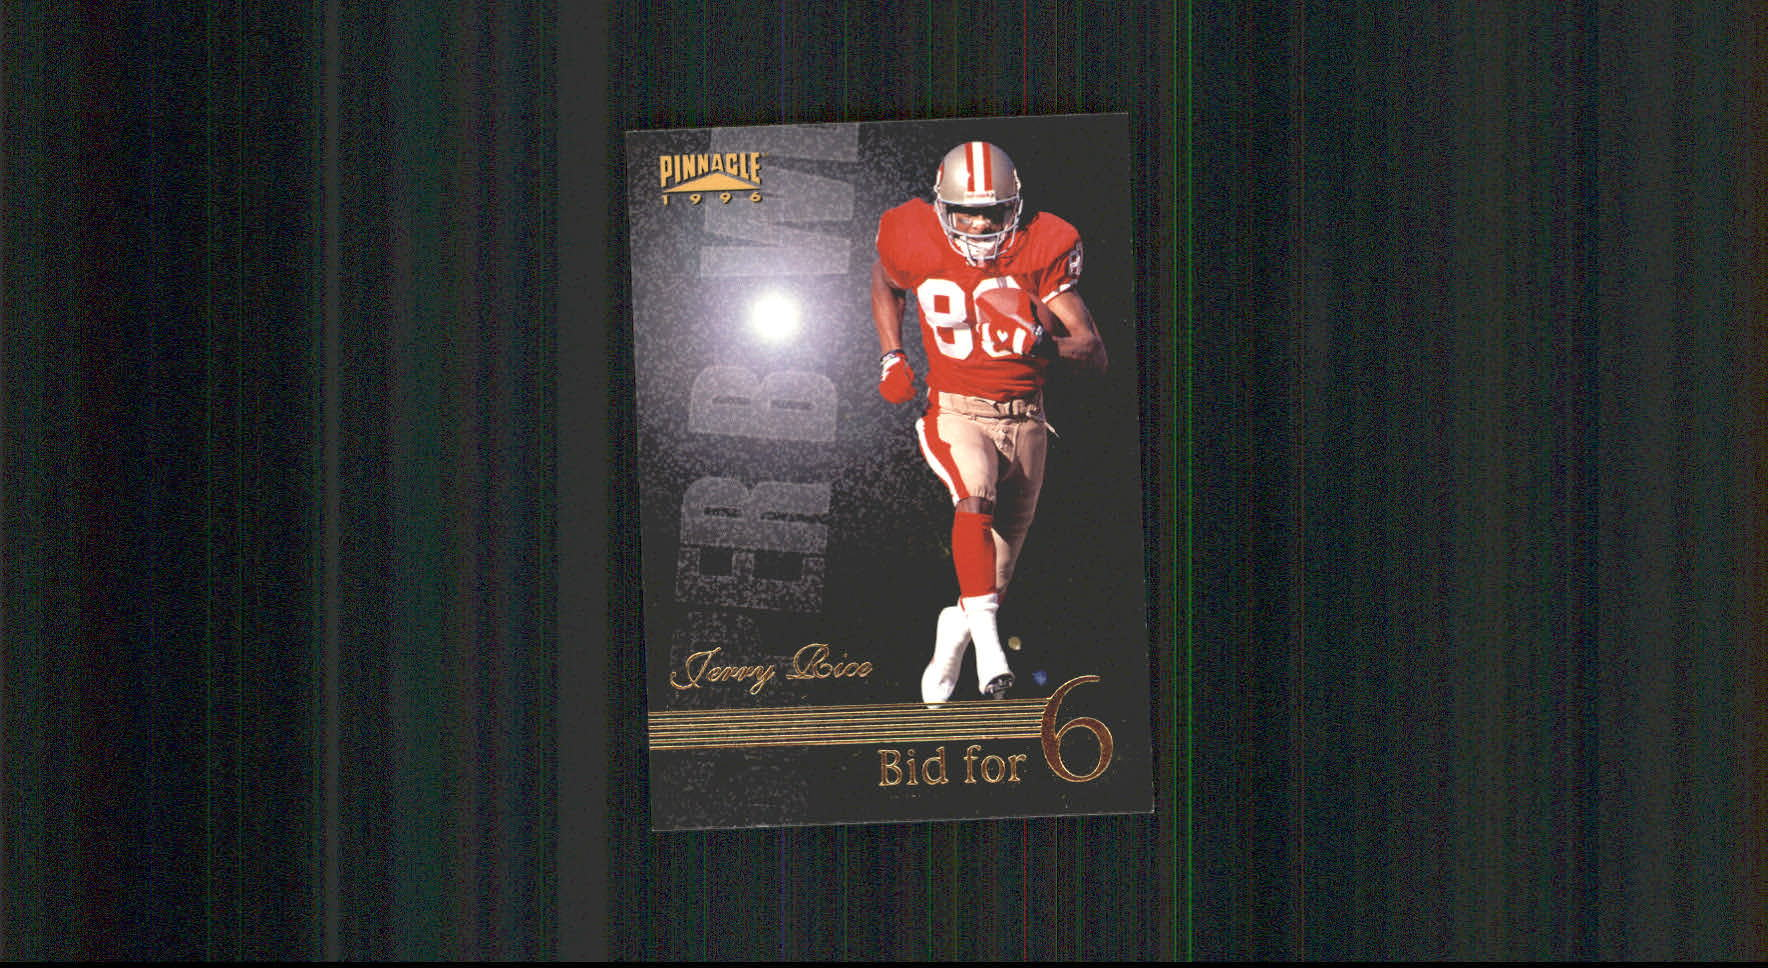 1996 Pinnacle #190 Jerry Rice BF6